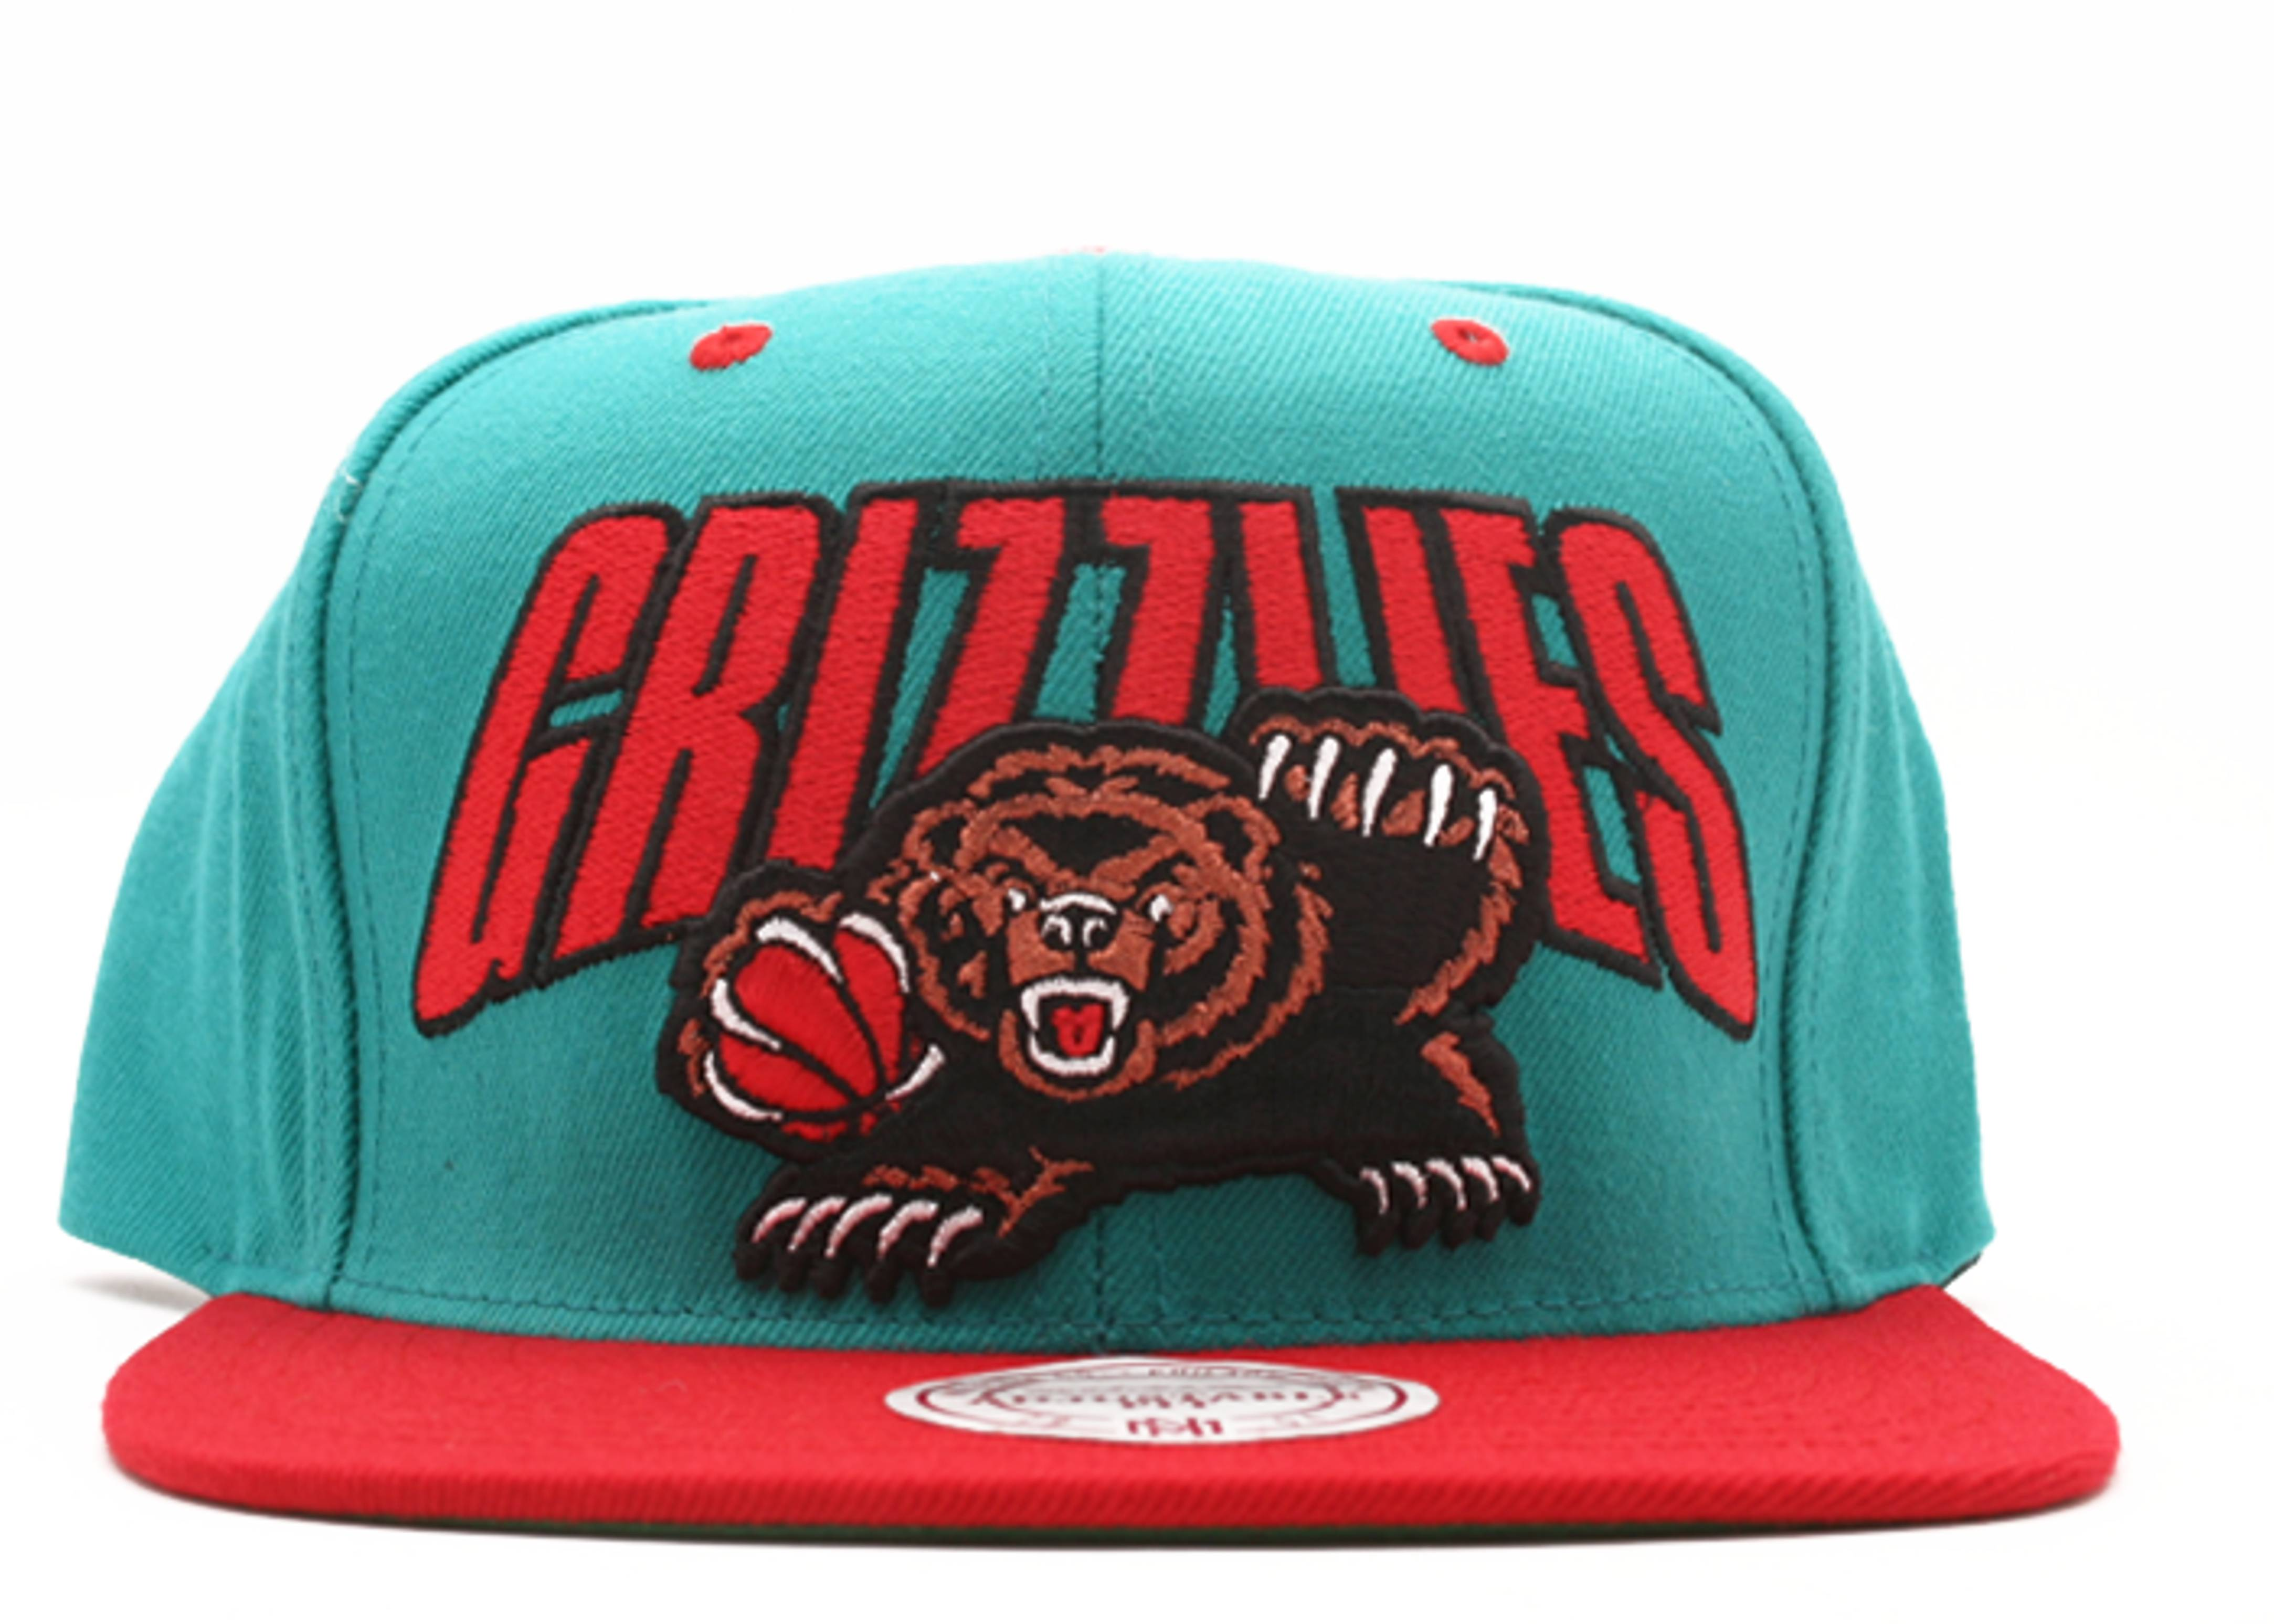 vancouver grizzlies snap-back